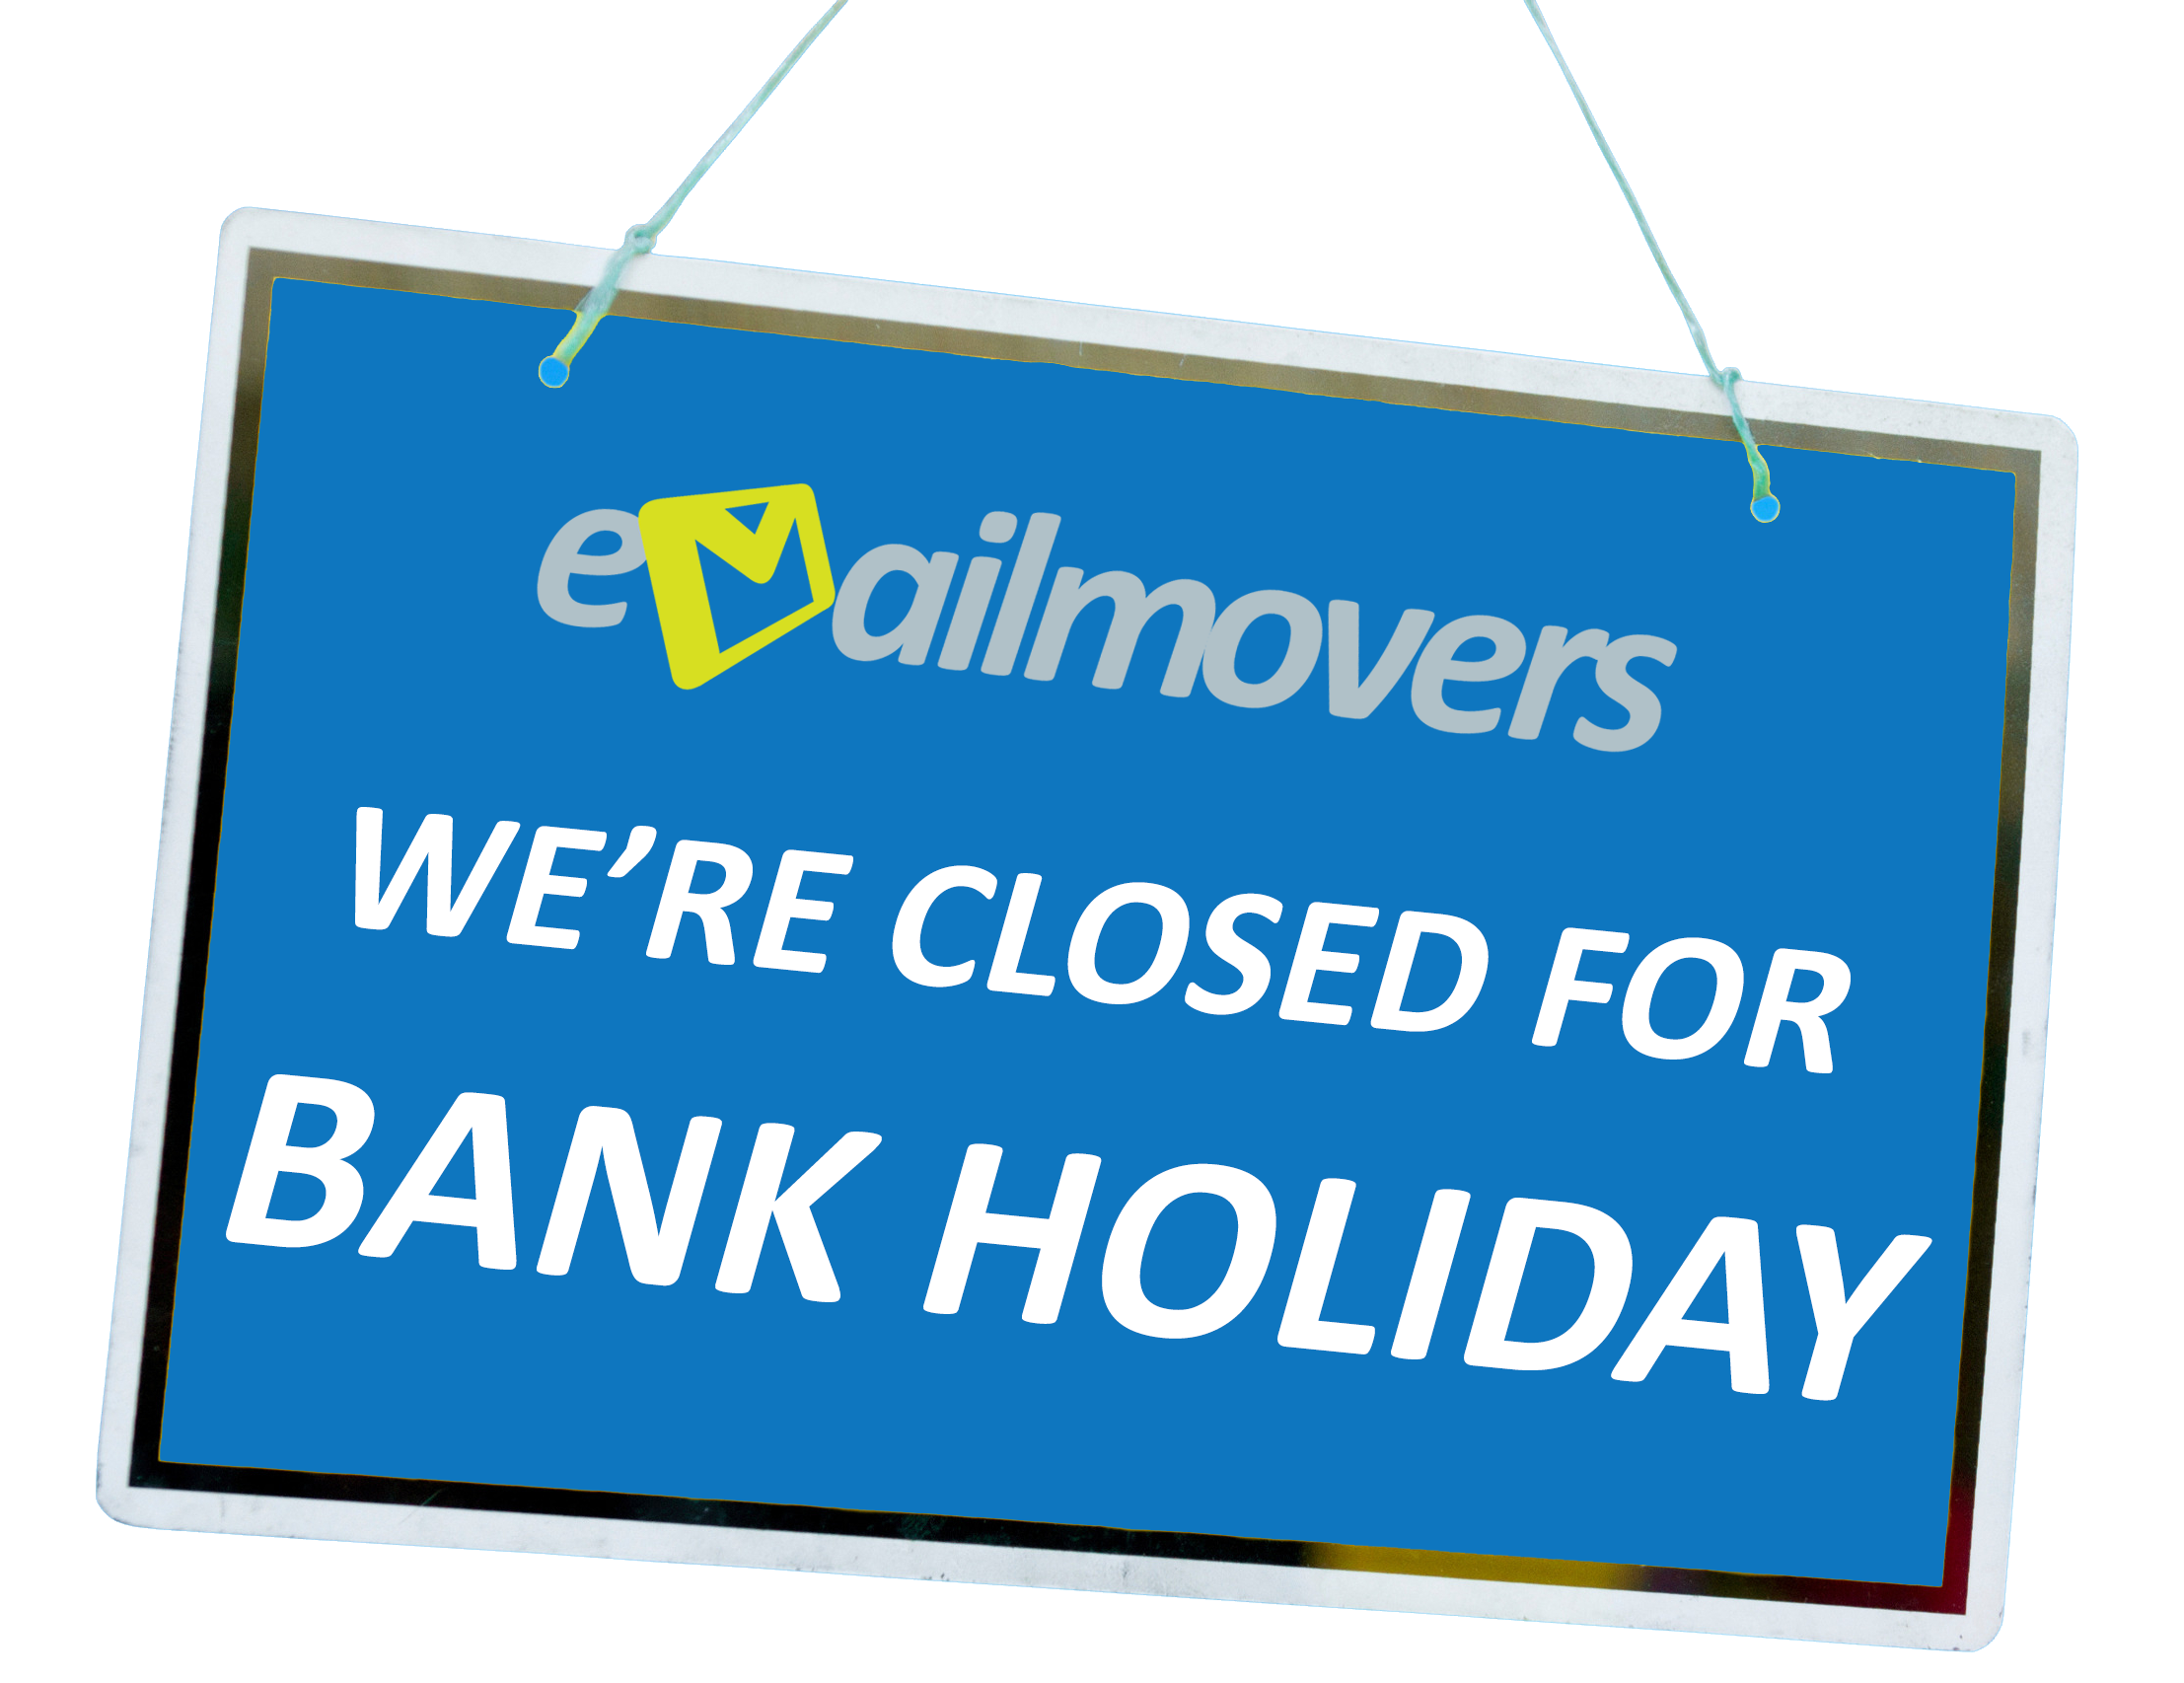 Closed for Bank Holiday